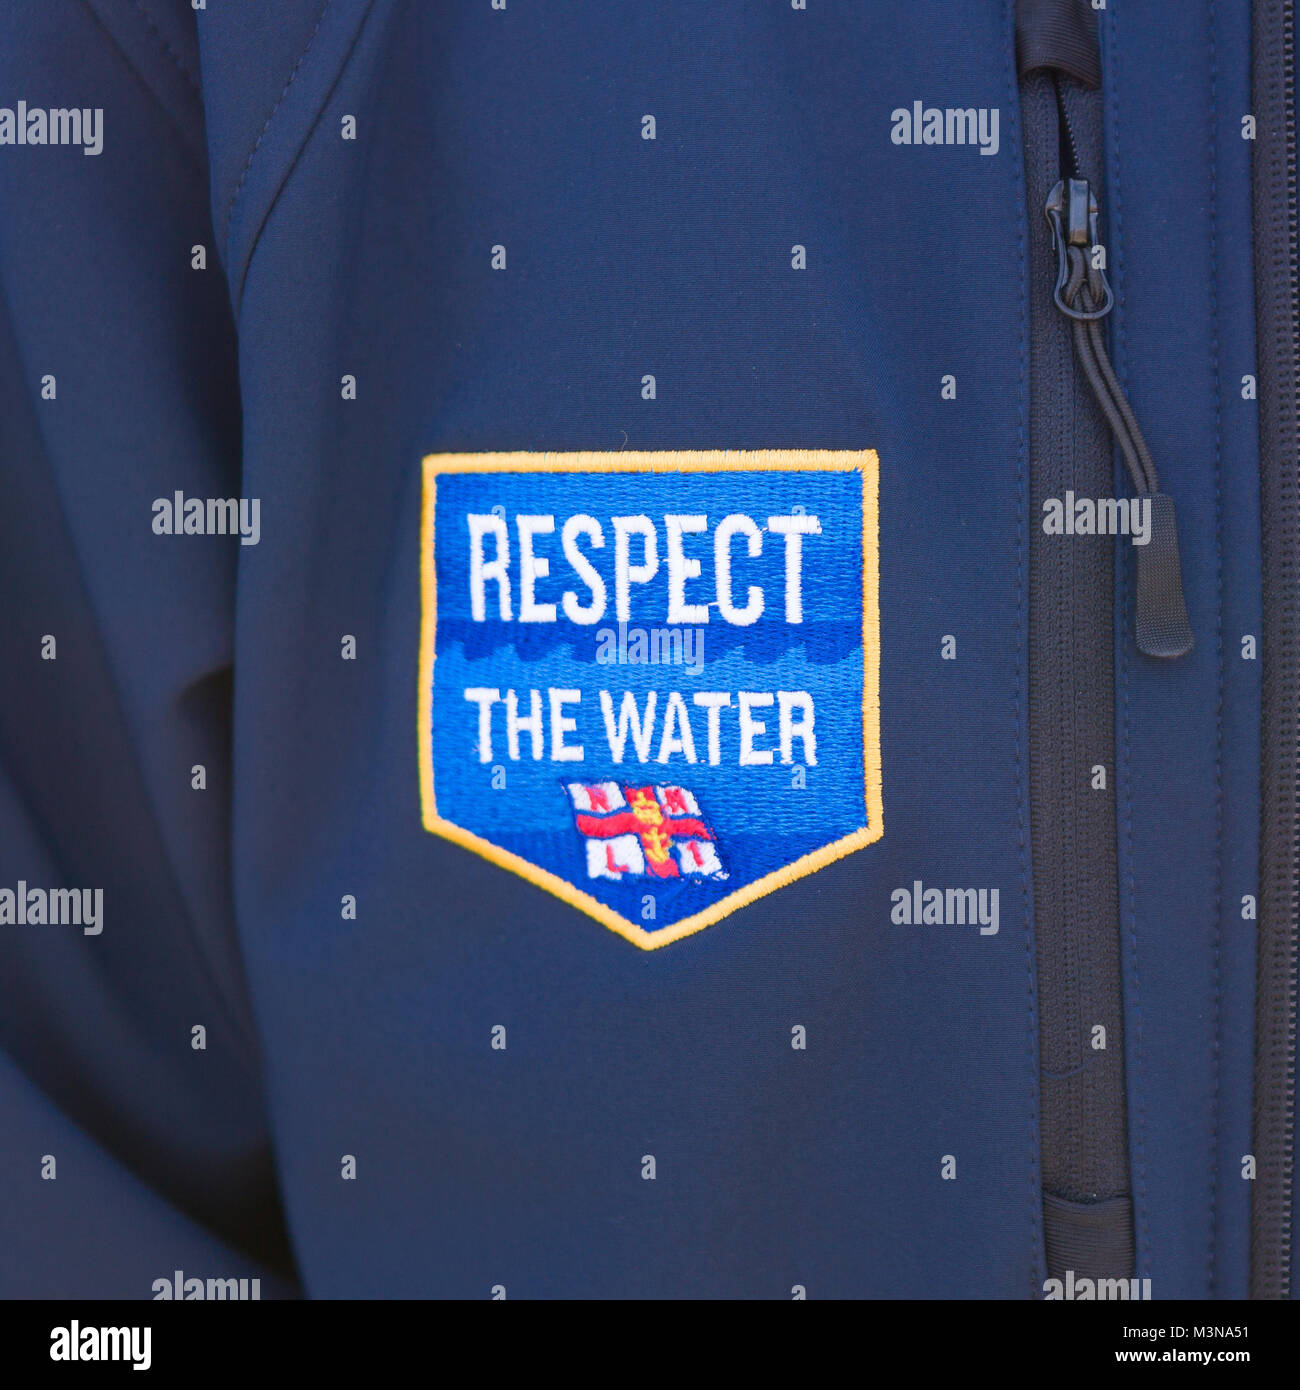 A close up of an RNLI Respect The Water patch on a blue fleece jacket. - Stock Image